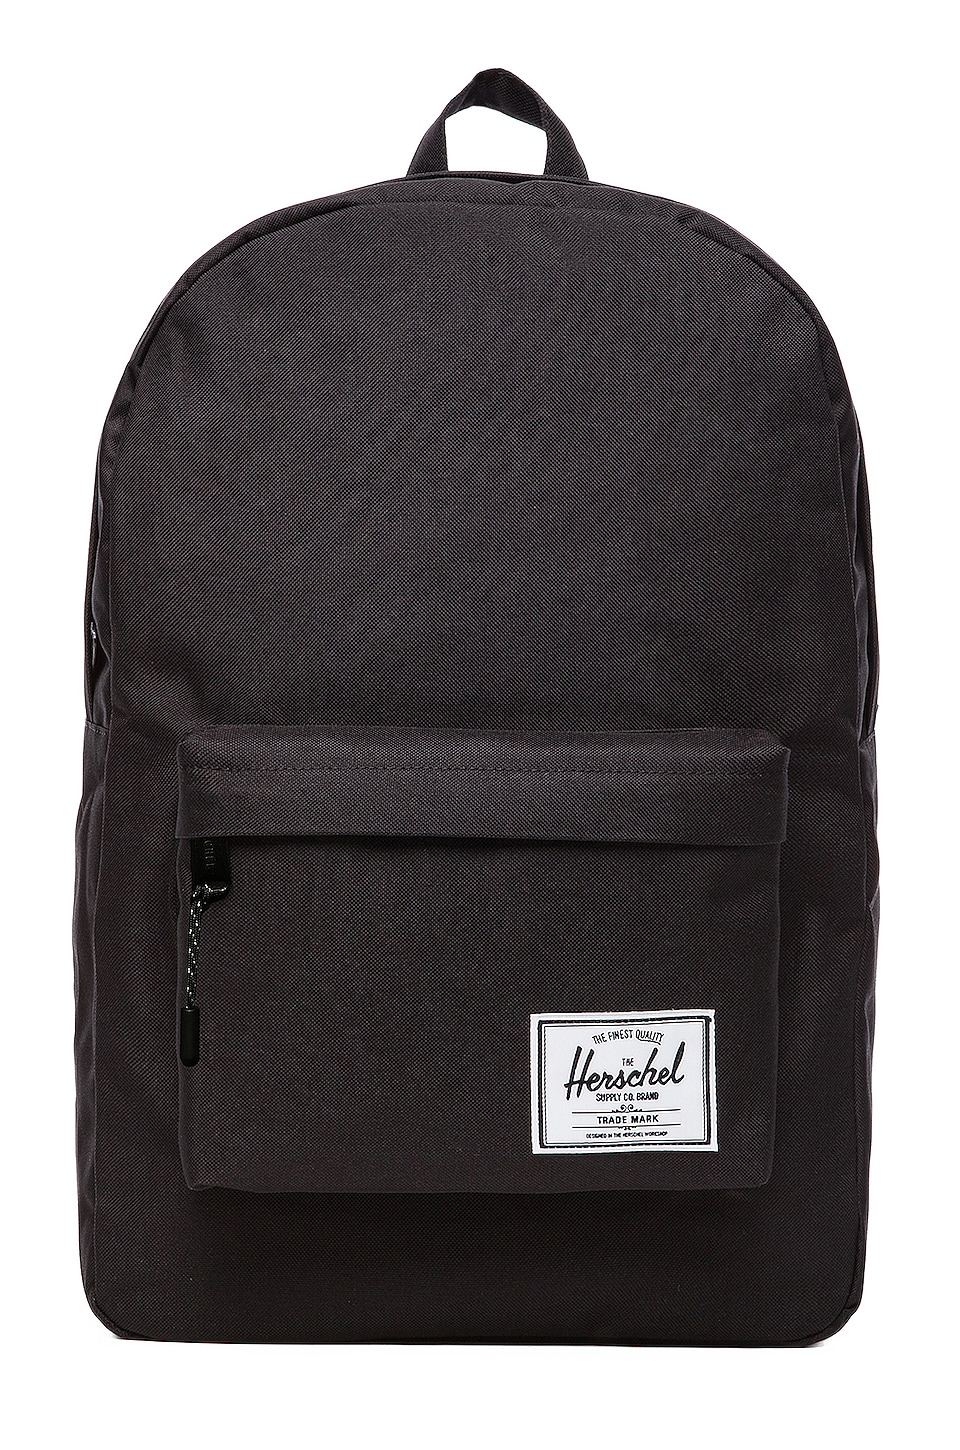 Herschel Supply Co. Classic in Black